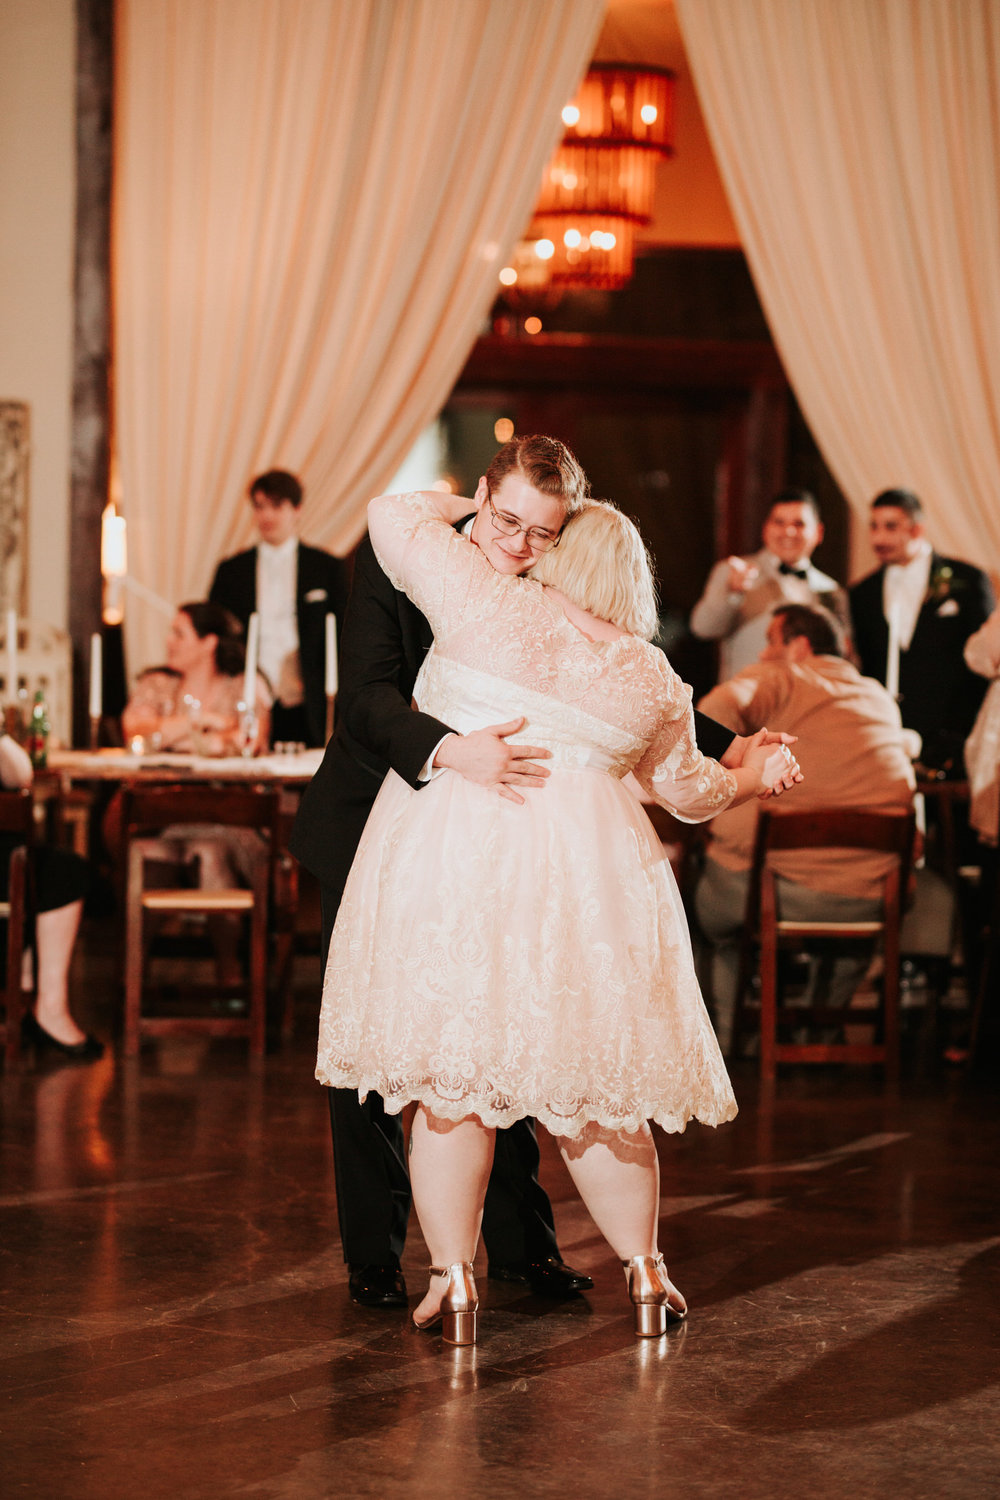 Bride dancing at Texas wedding reception